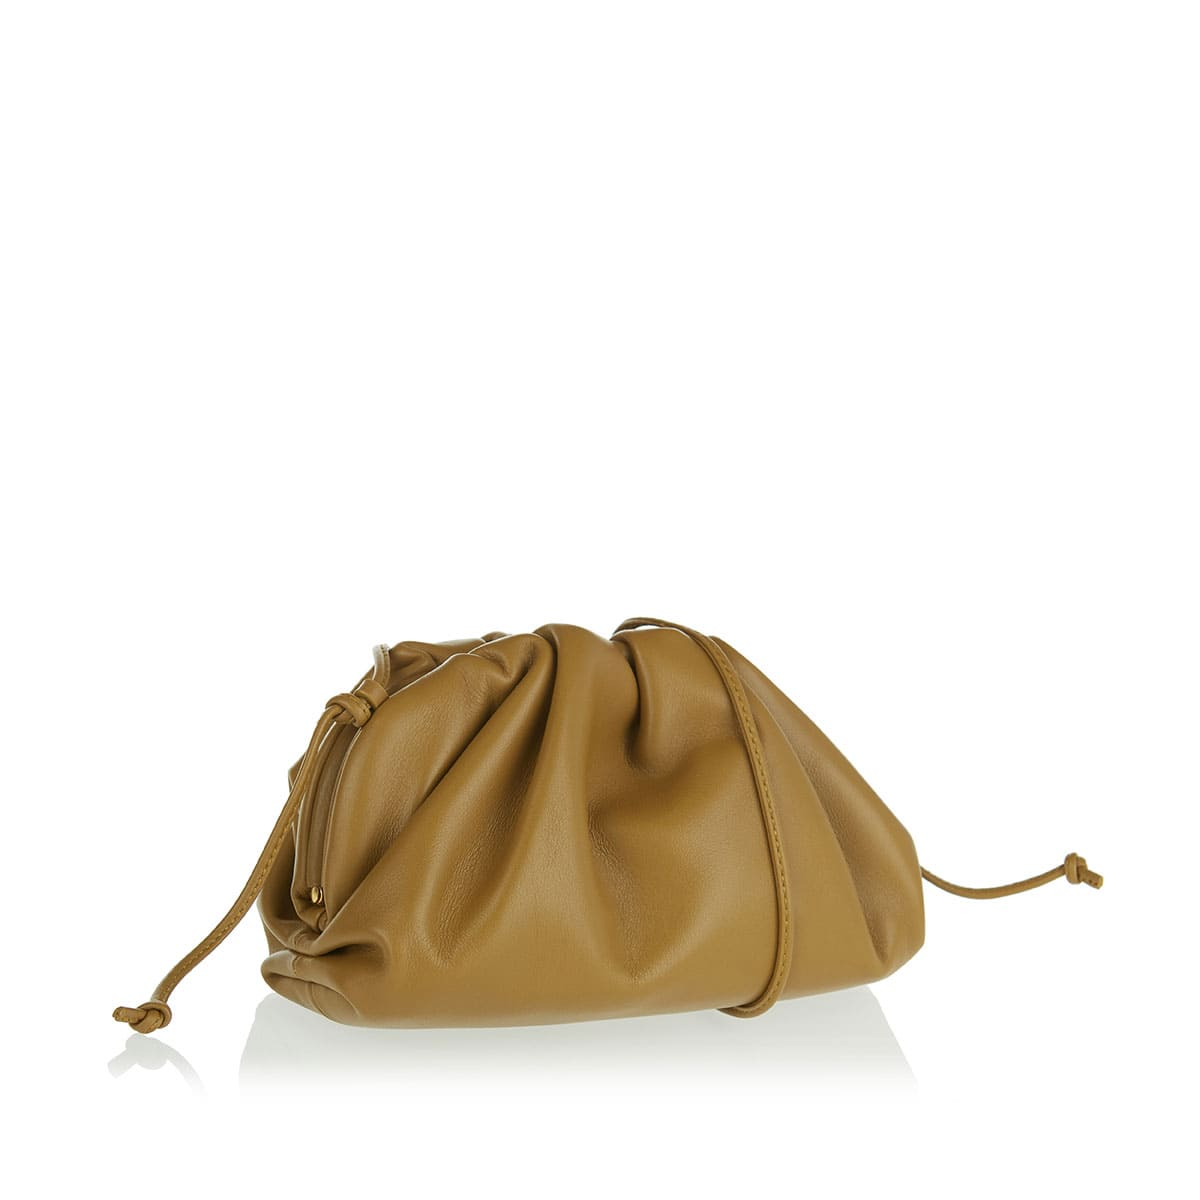 The Pouch 20 leather clutch